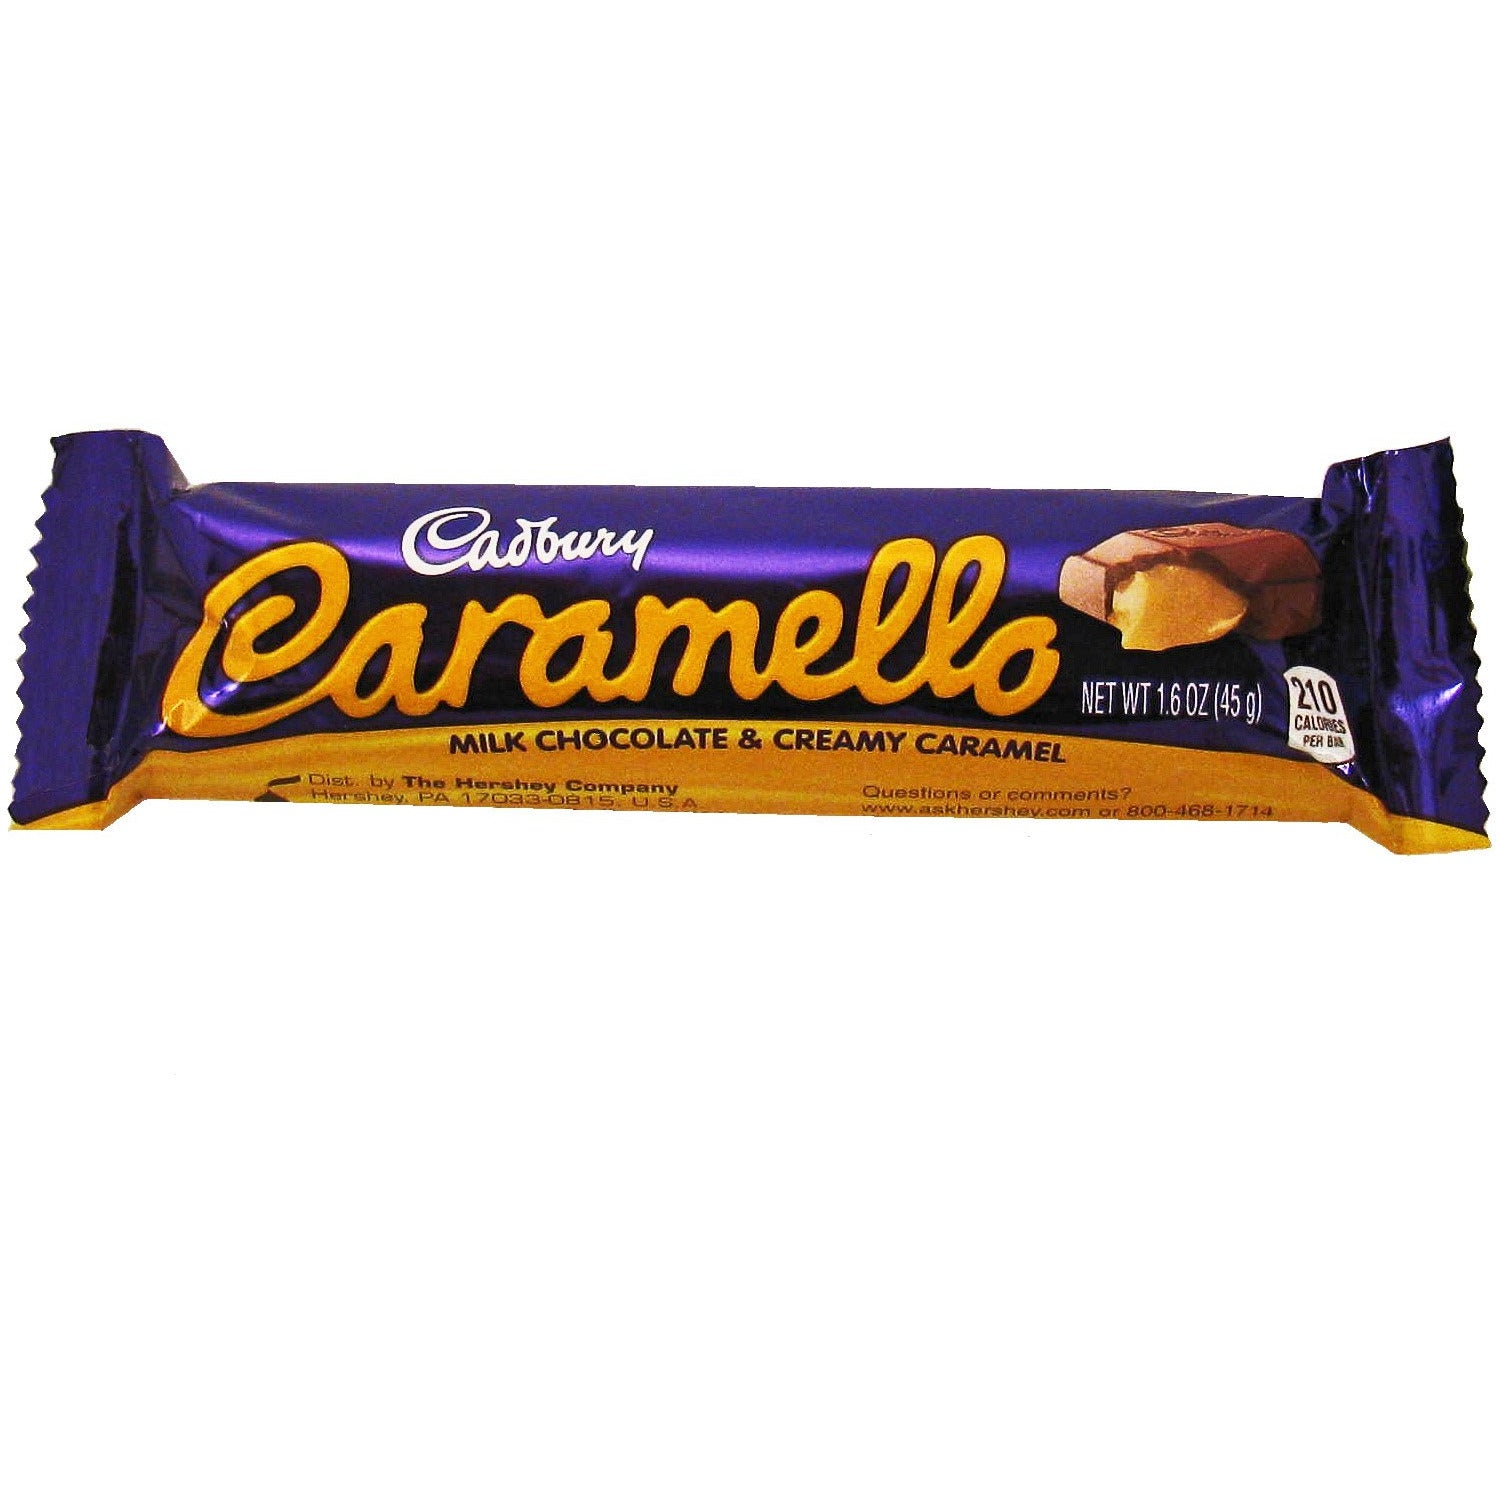 Cadbury Caramello Milk Chocolate & Creamy Caramel Bar